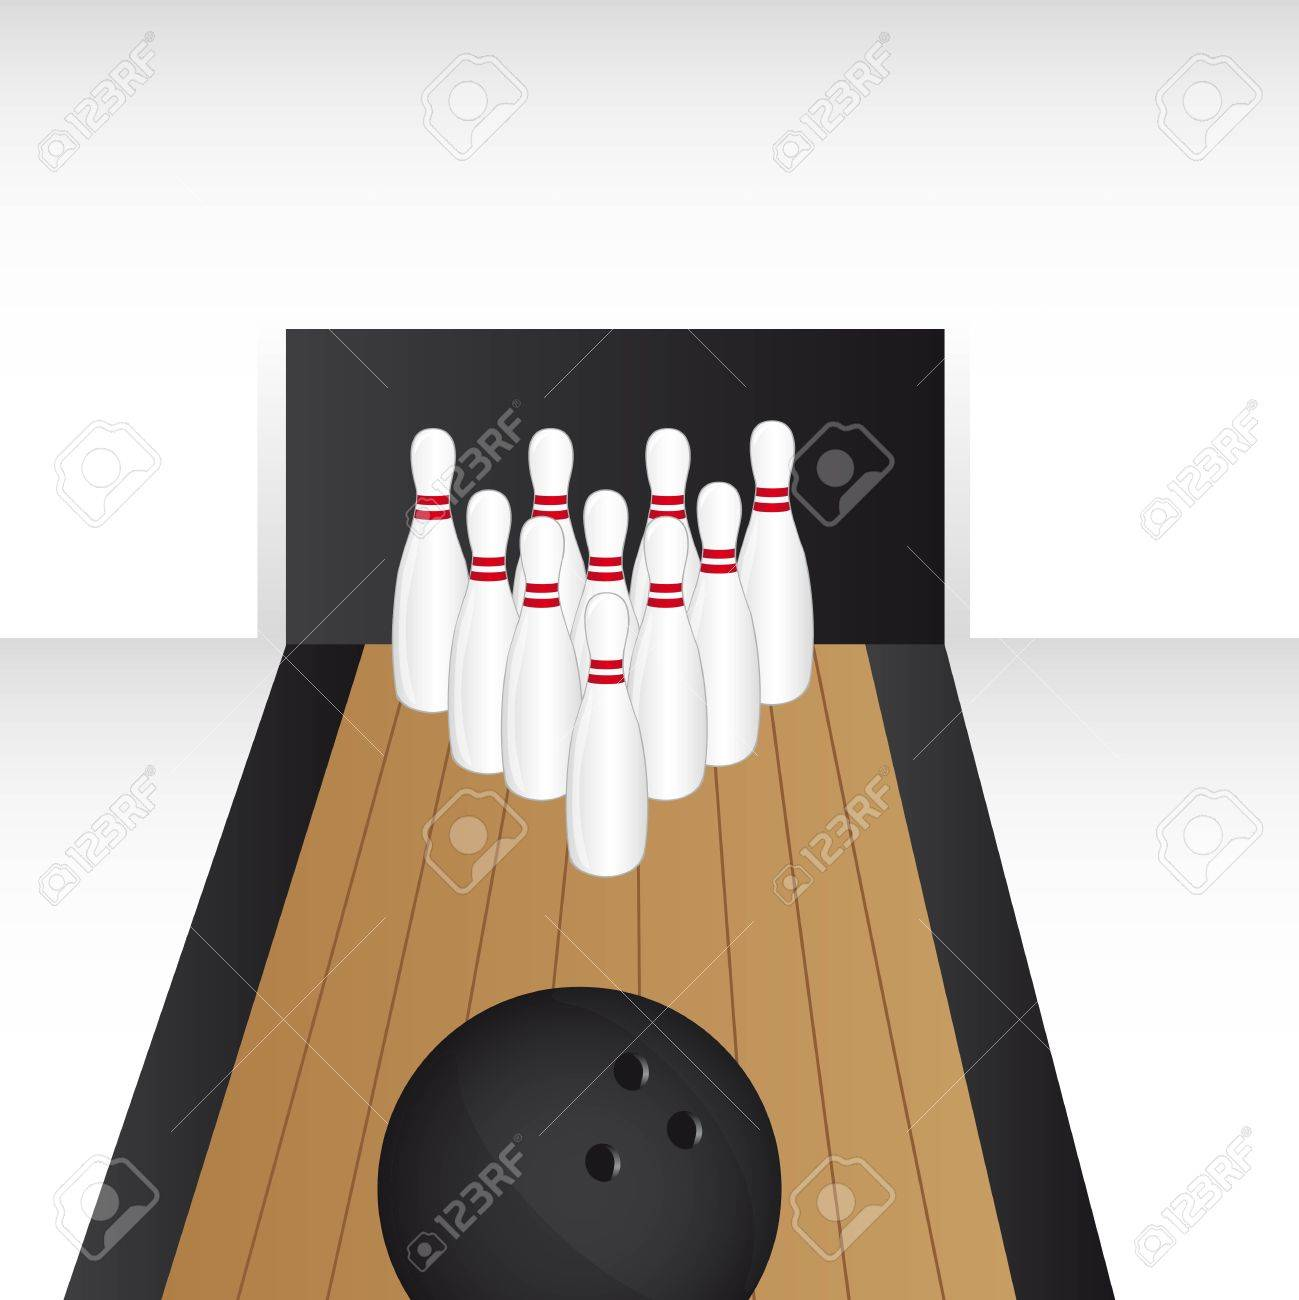 bowling alley with bowling ball vector illustration.